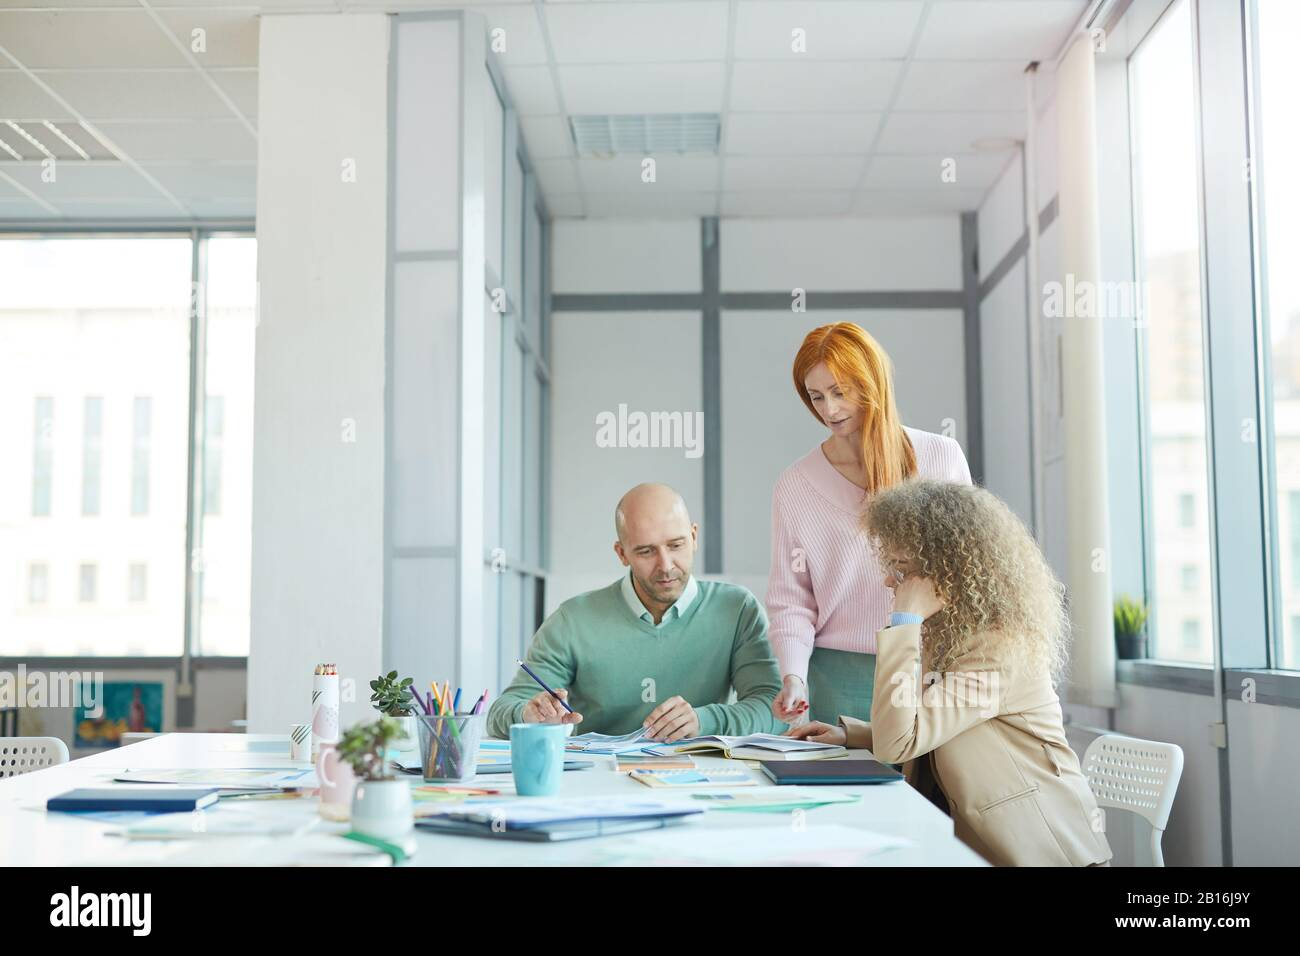 Group of three business people discussing documents while working at table in office, copy space Stock Photo